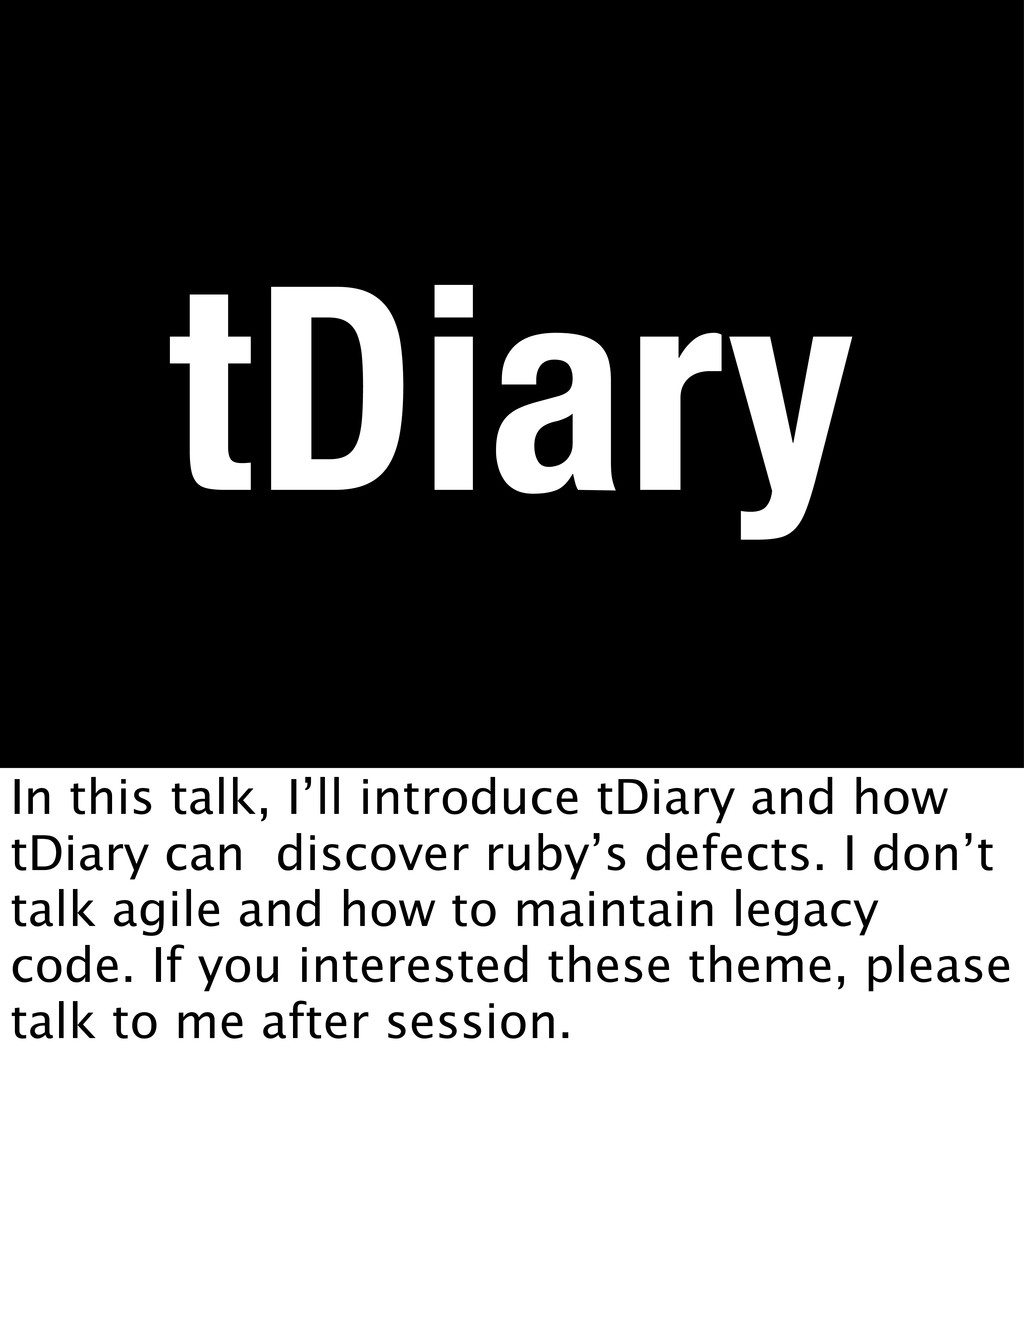 tDiary In this talk, I'll introduce tDiary and ...